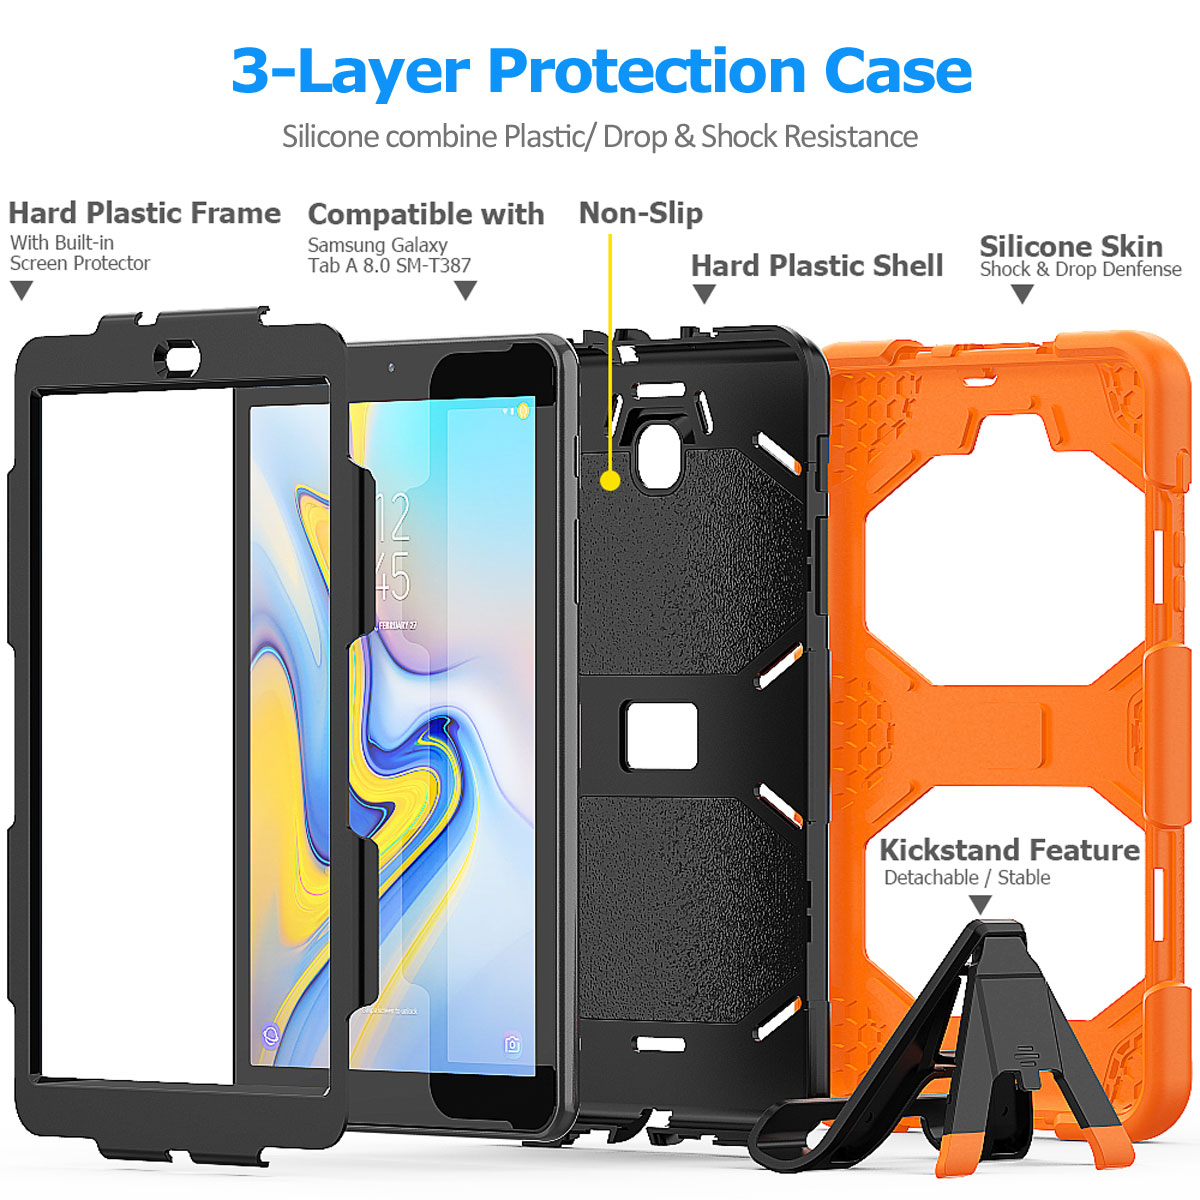 Rugged-Hard-Case-For-Samsung-Galaxy-Tab-A-8-0-2018-SM-T387-with-Screen-Protector thumbnail 42